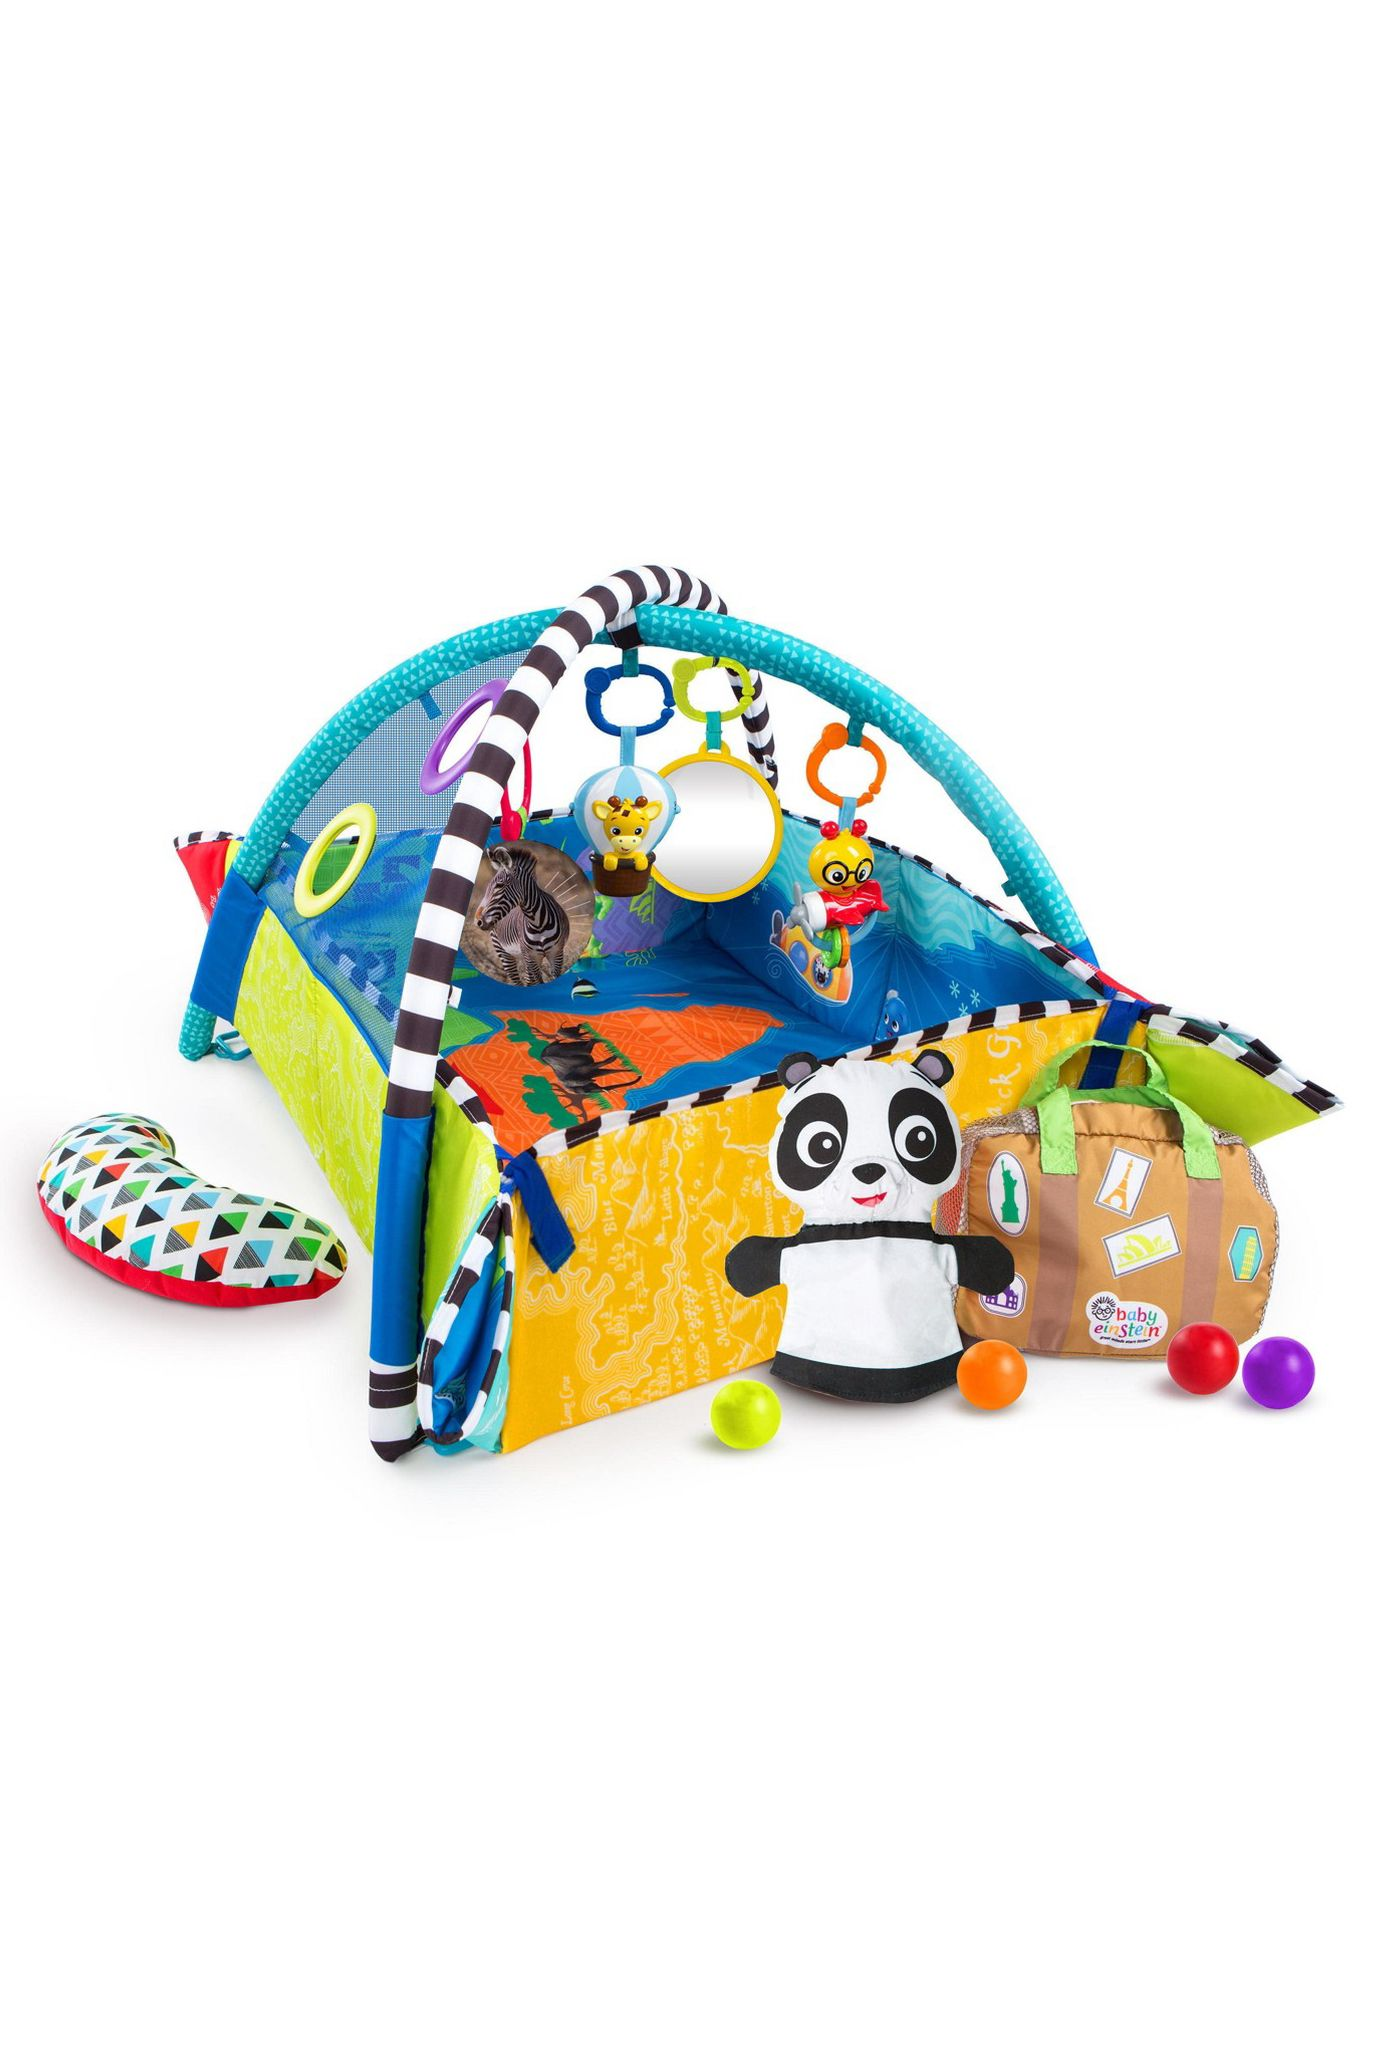 Best Baby Play Mats - Top Test Baby Play Mats for Parents